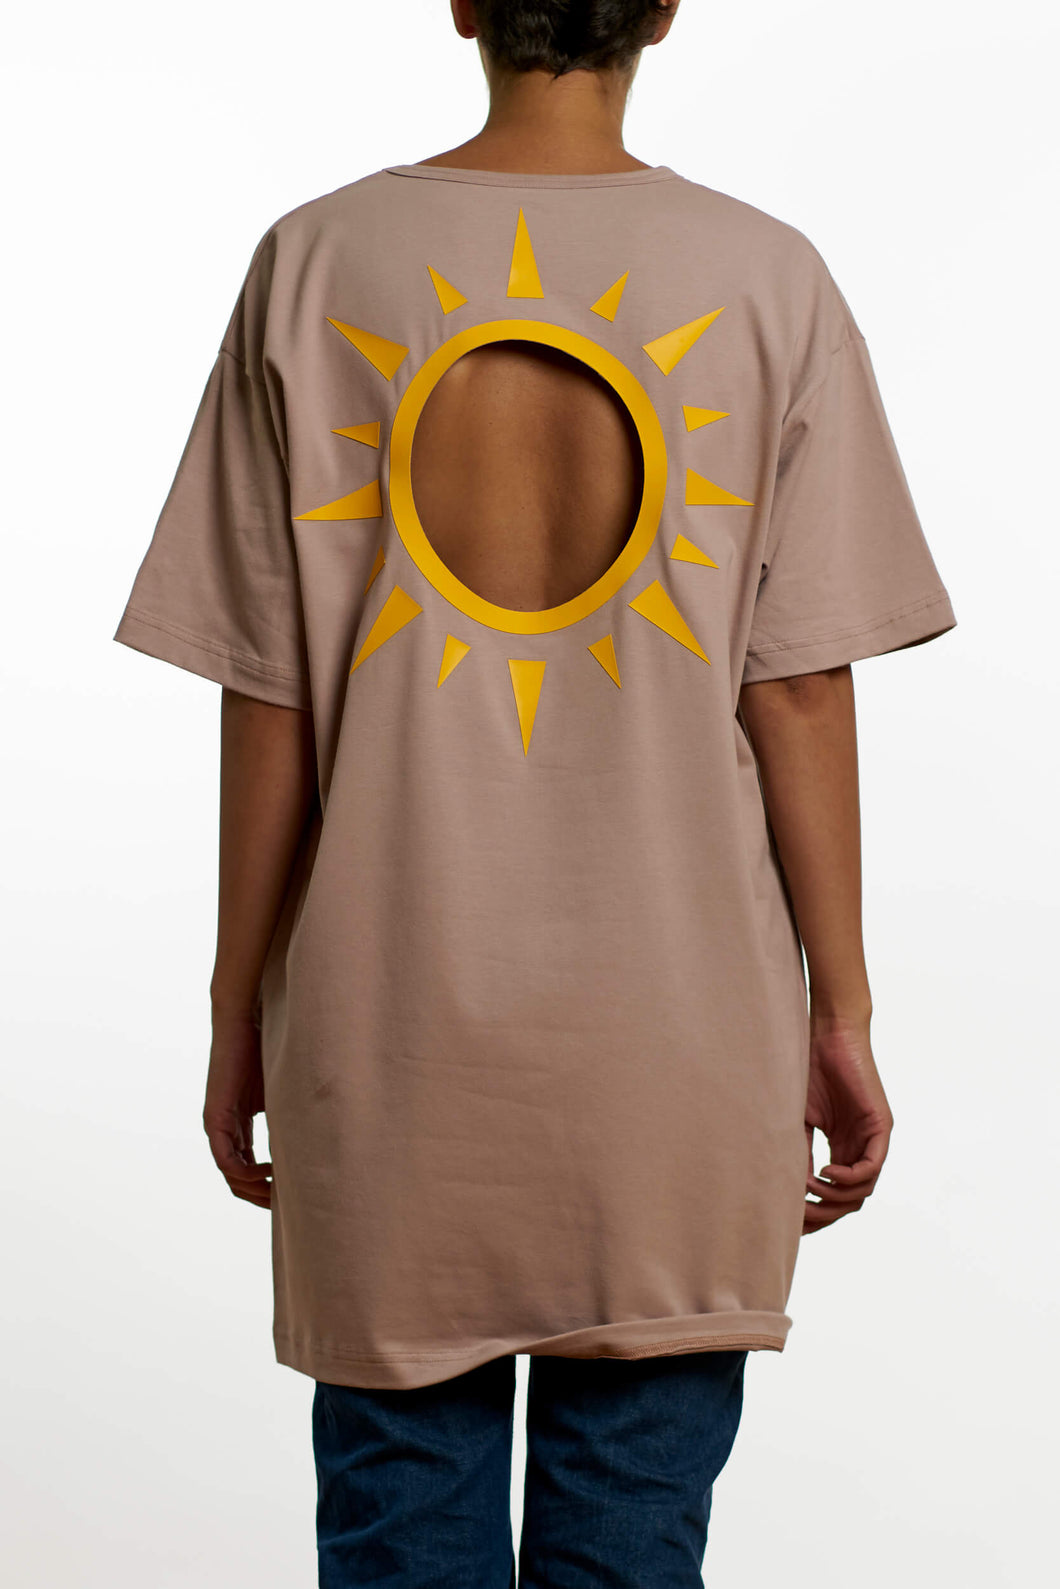 Wholly Sun 7 Dress